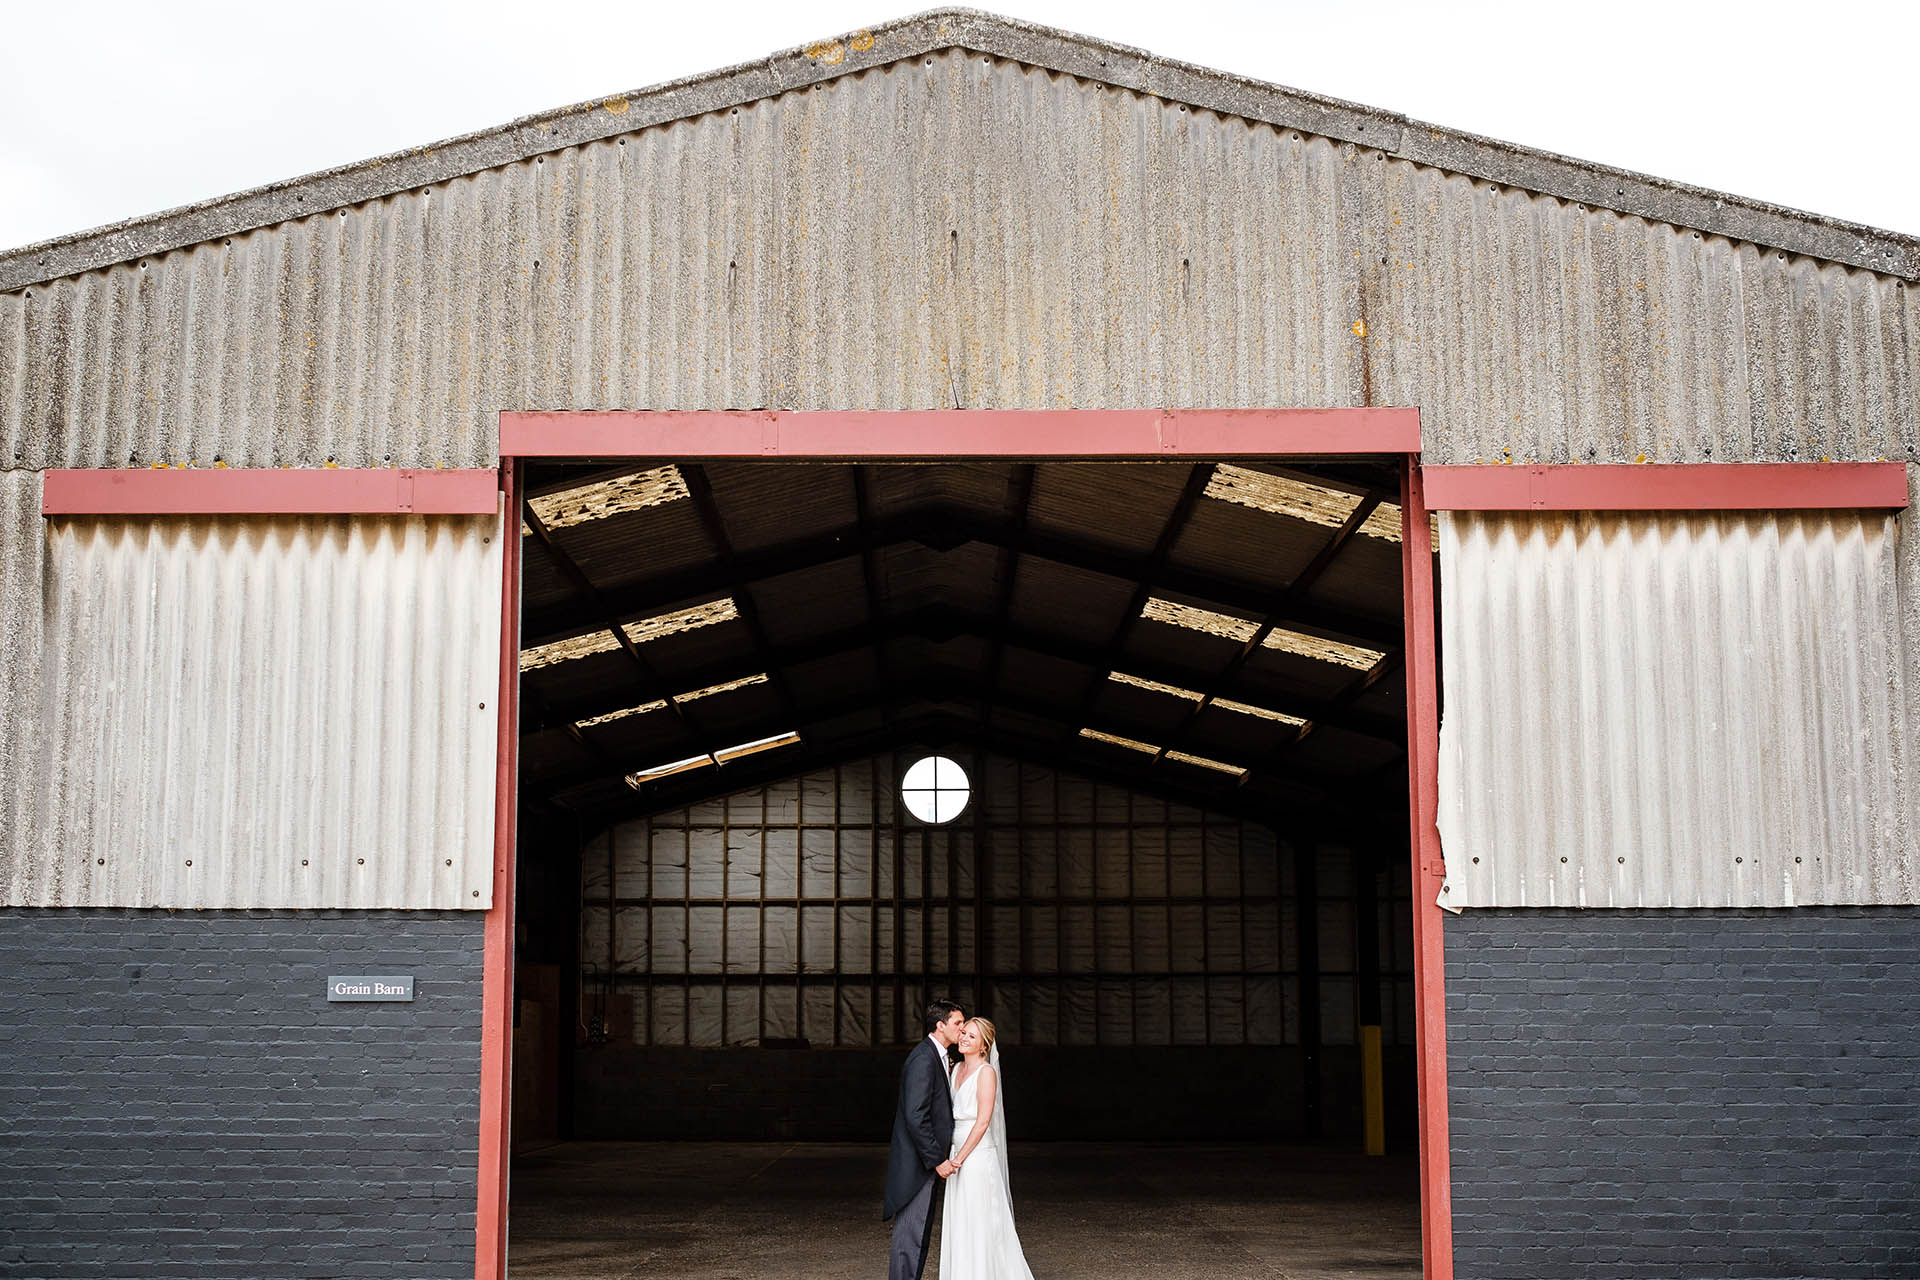 Hertfordshire Barn Wedding | Rebecca & Alistair